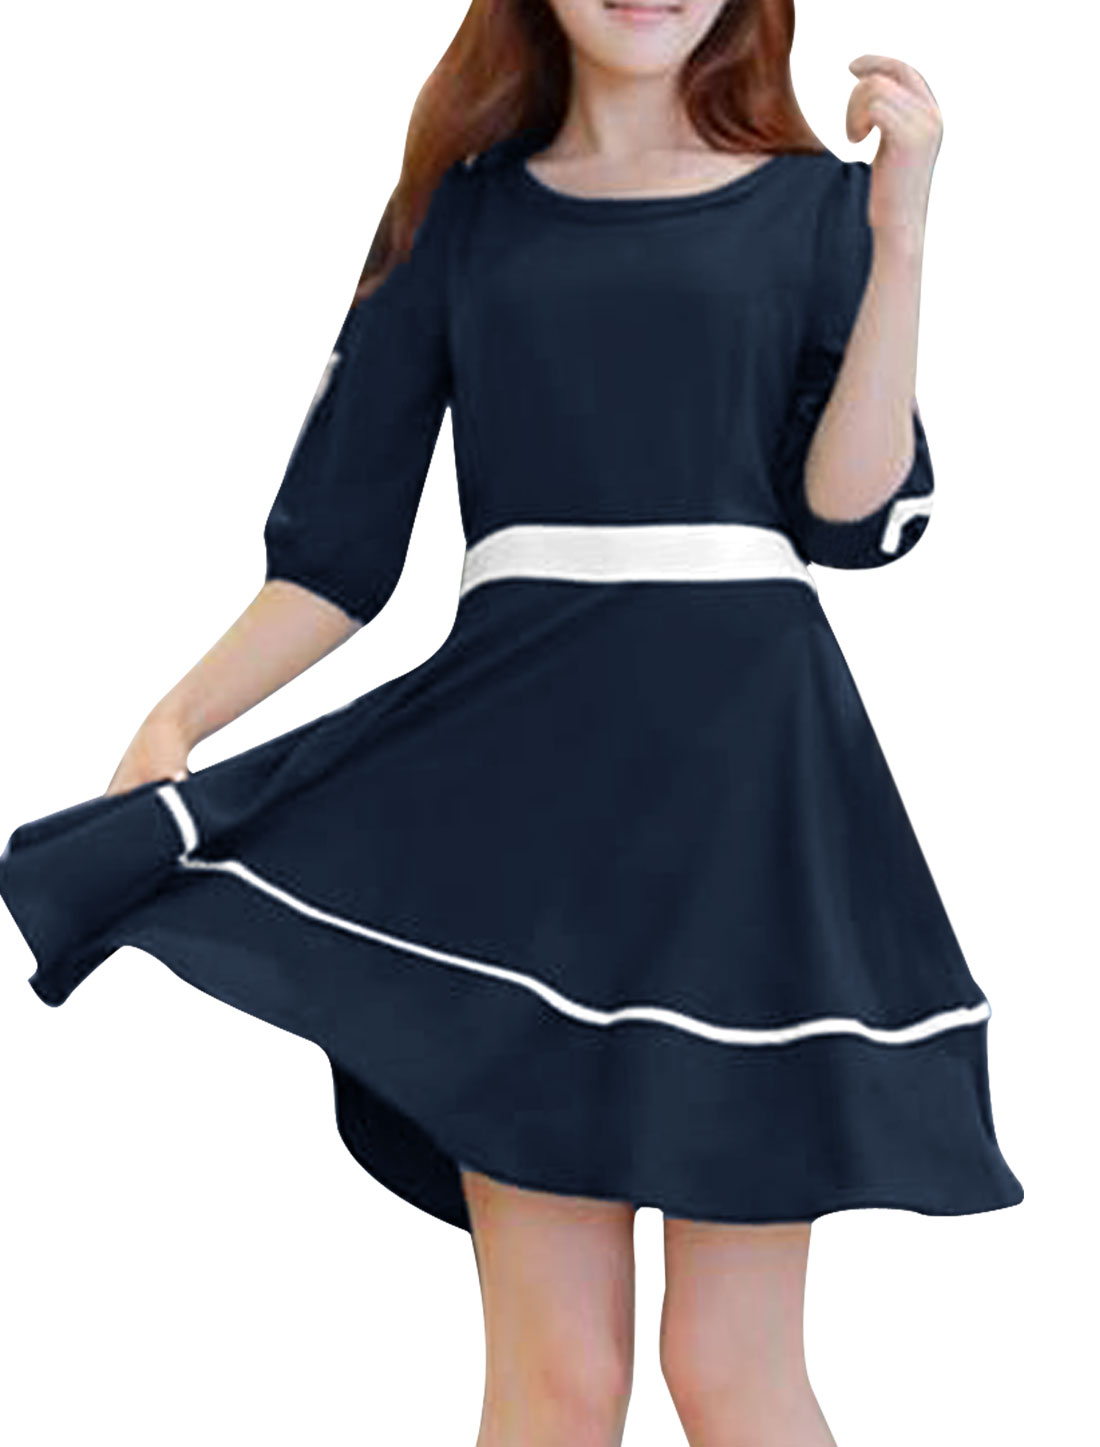 Women Chiffon Peter Pan Collar Zipper Up A Line Dress Dark Blue S